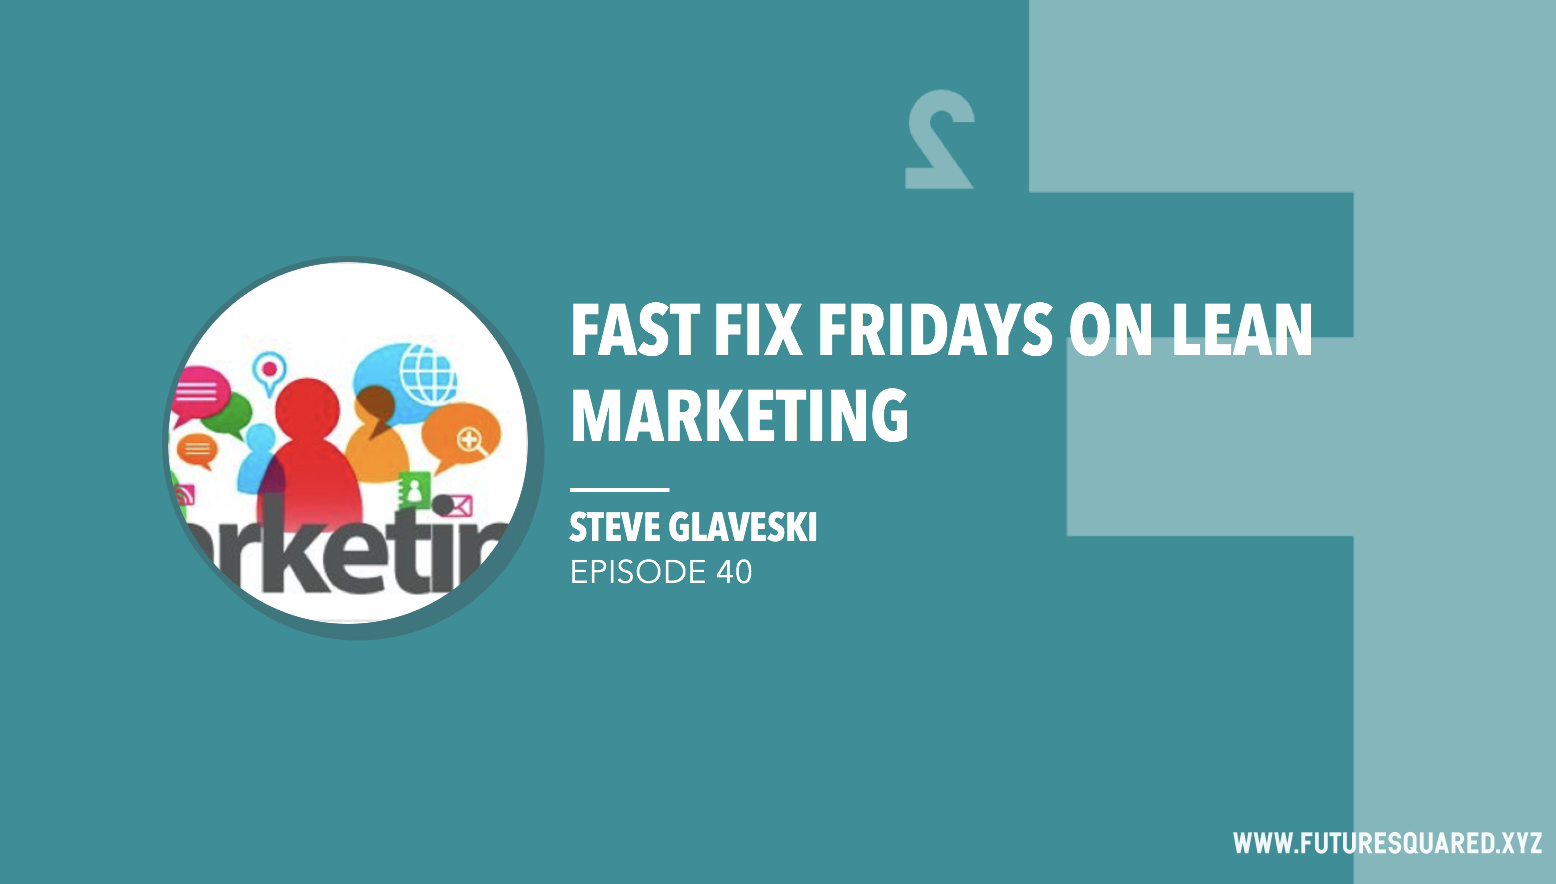 Future Squared Episode #40: Fast Fix Friday on Lean Marketing